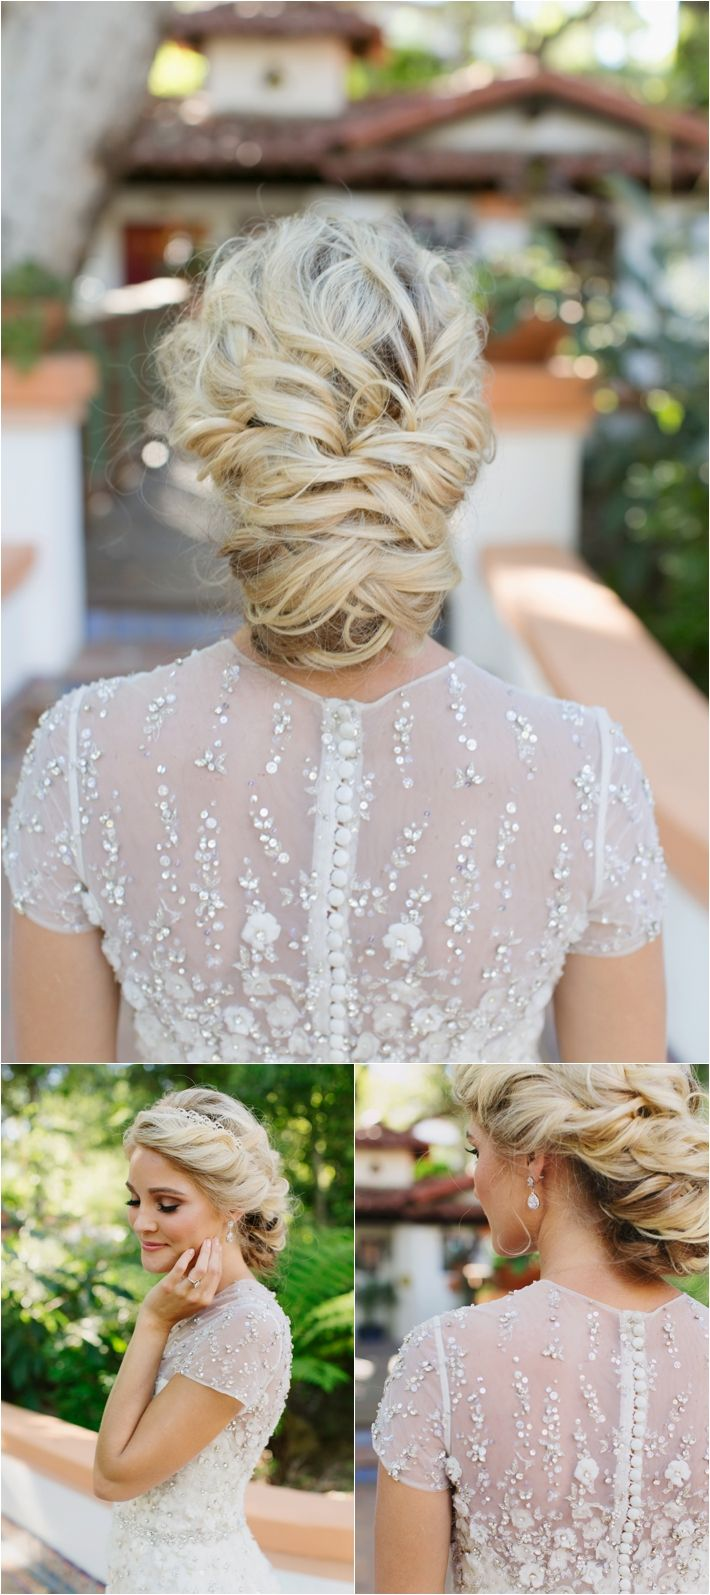 Rancho Las Lomas Wedding Inspiration | Elegant Bridal Hair Up-do | Damaris Mia Photography